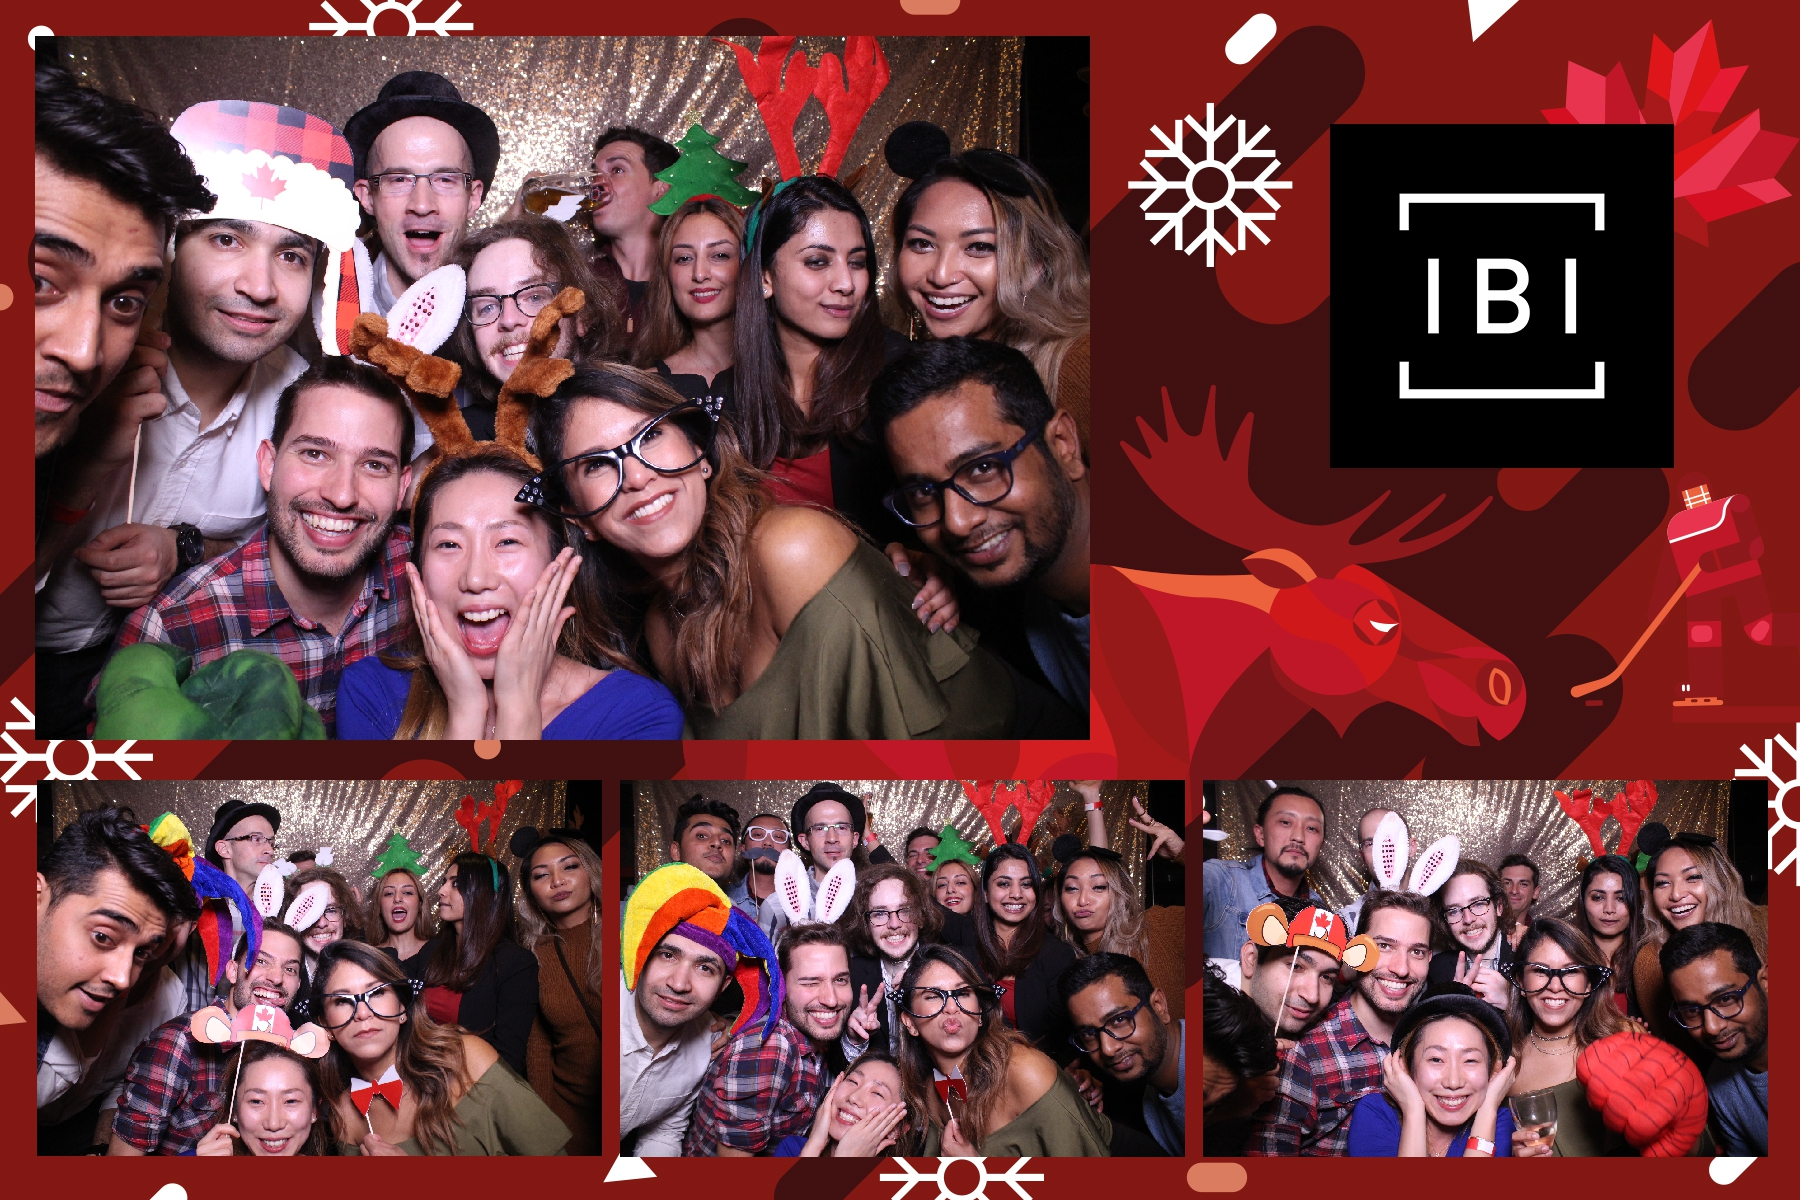 corporate brand activation photo booth toronto